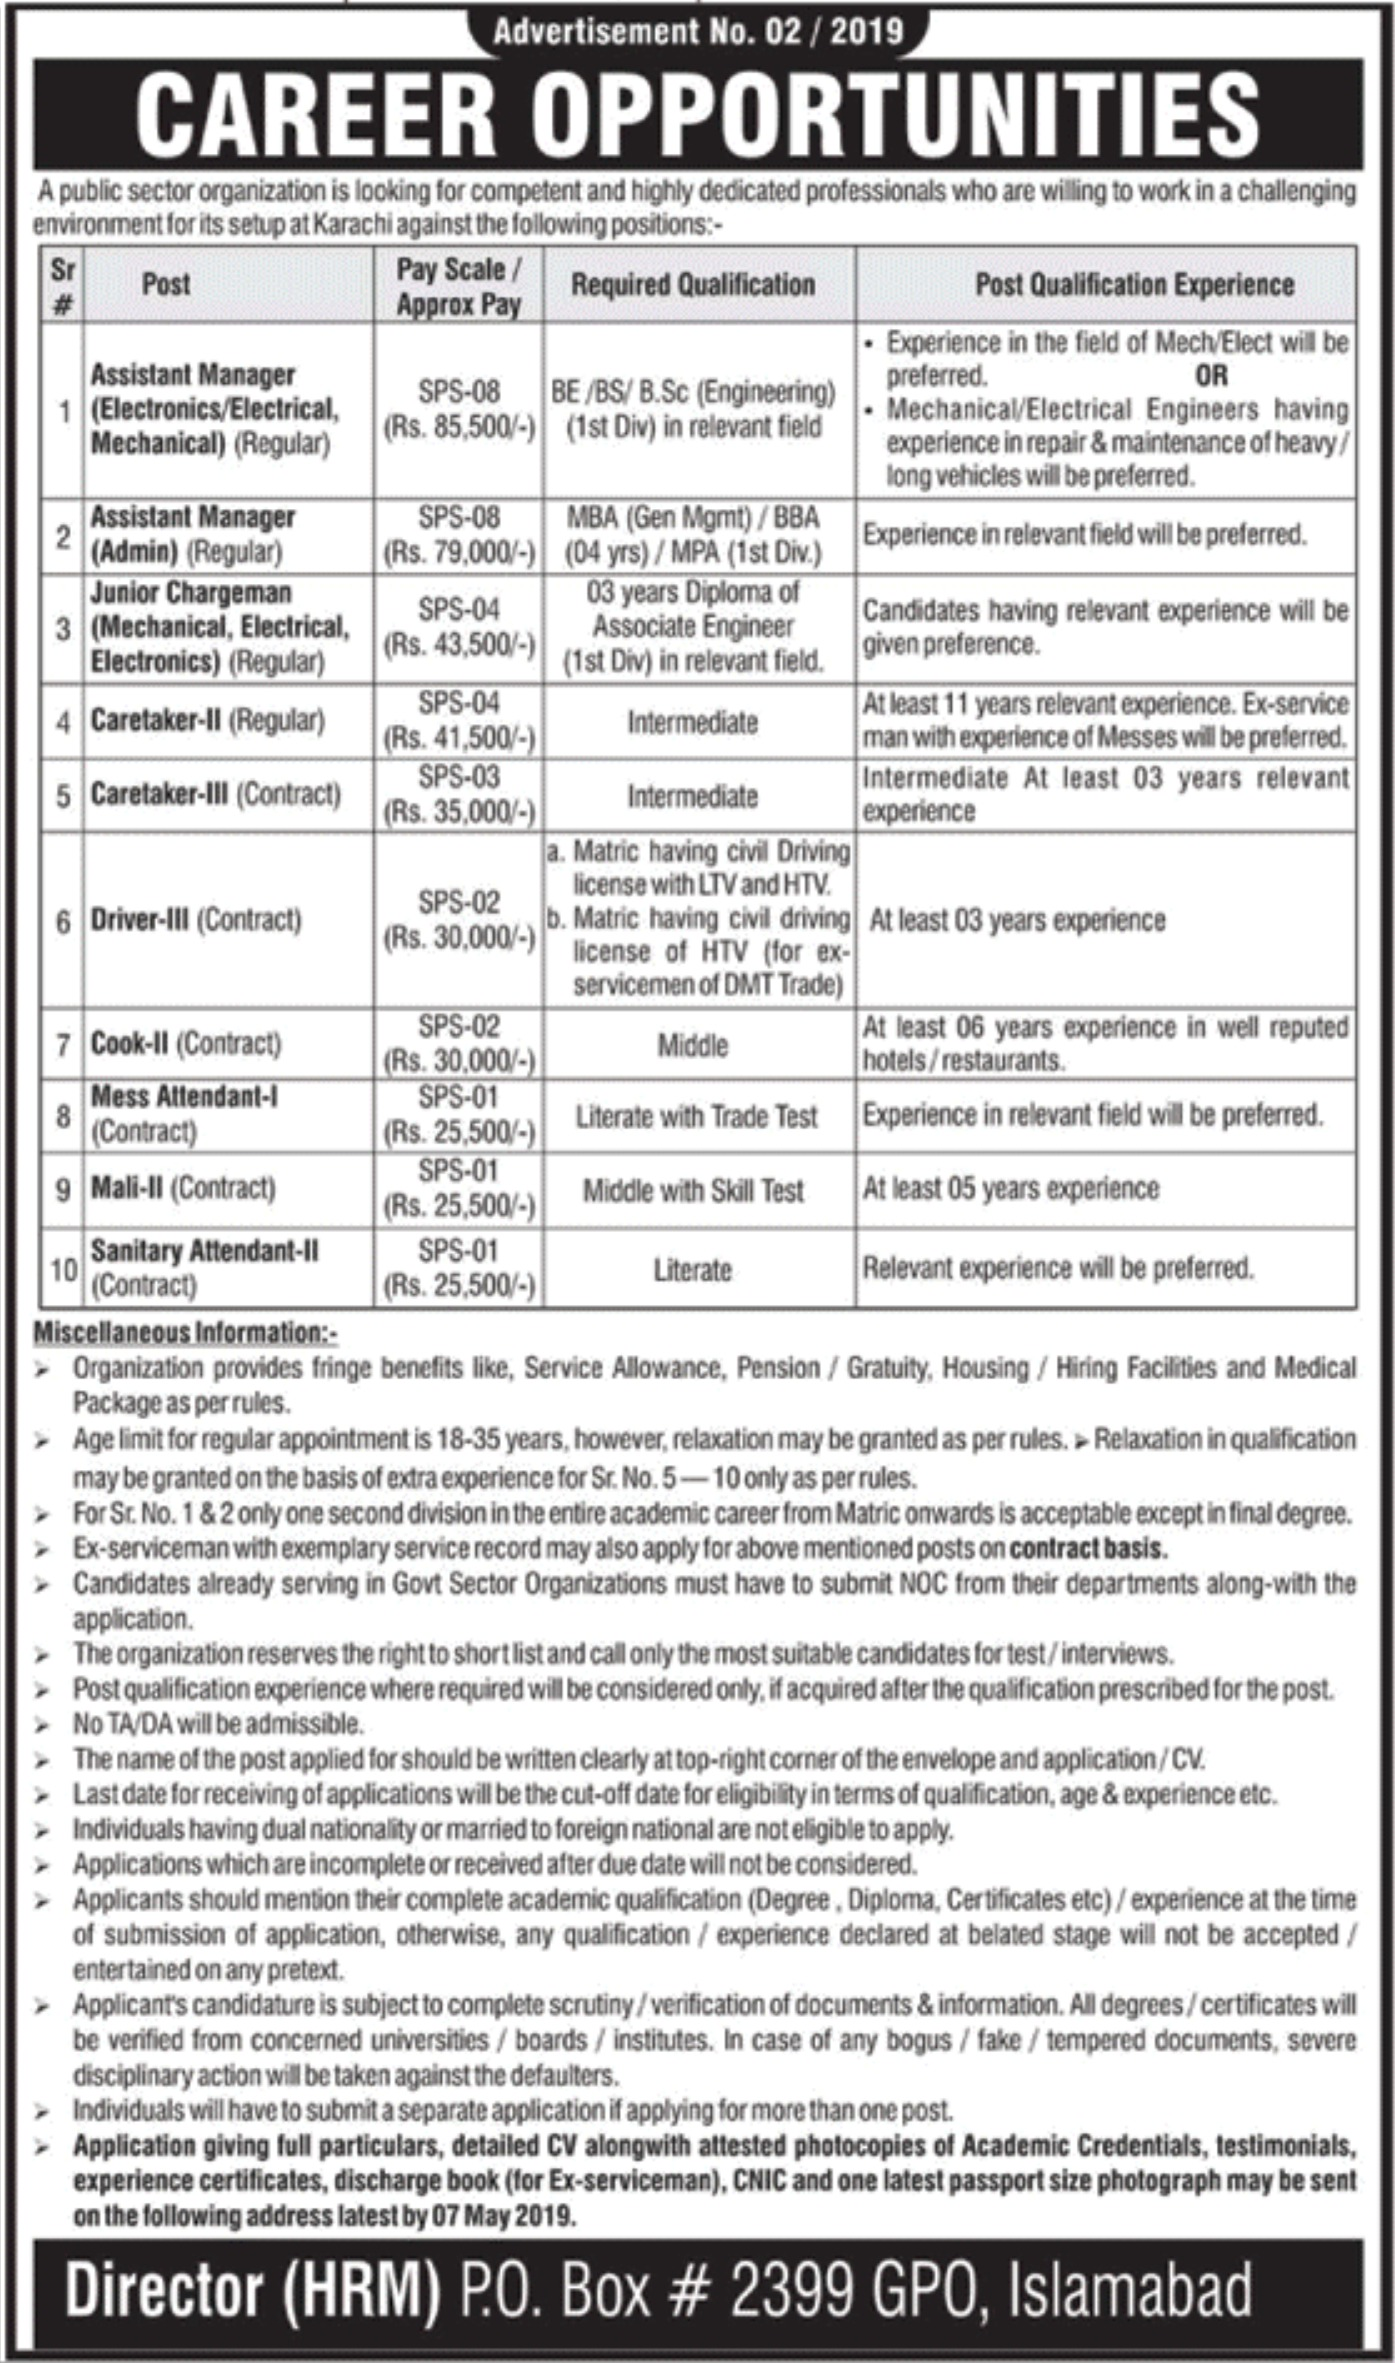 Public Sector Organization Jobs 2019 P.O.Box 2399 Islamabad Latest